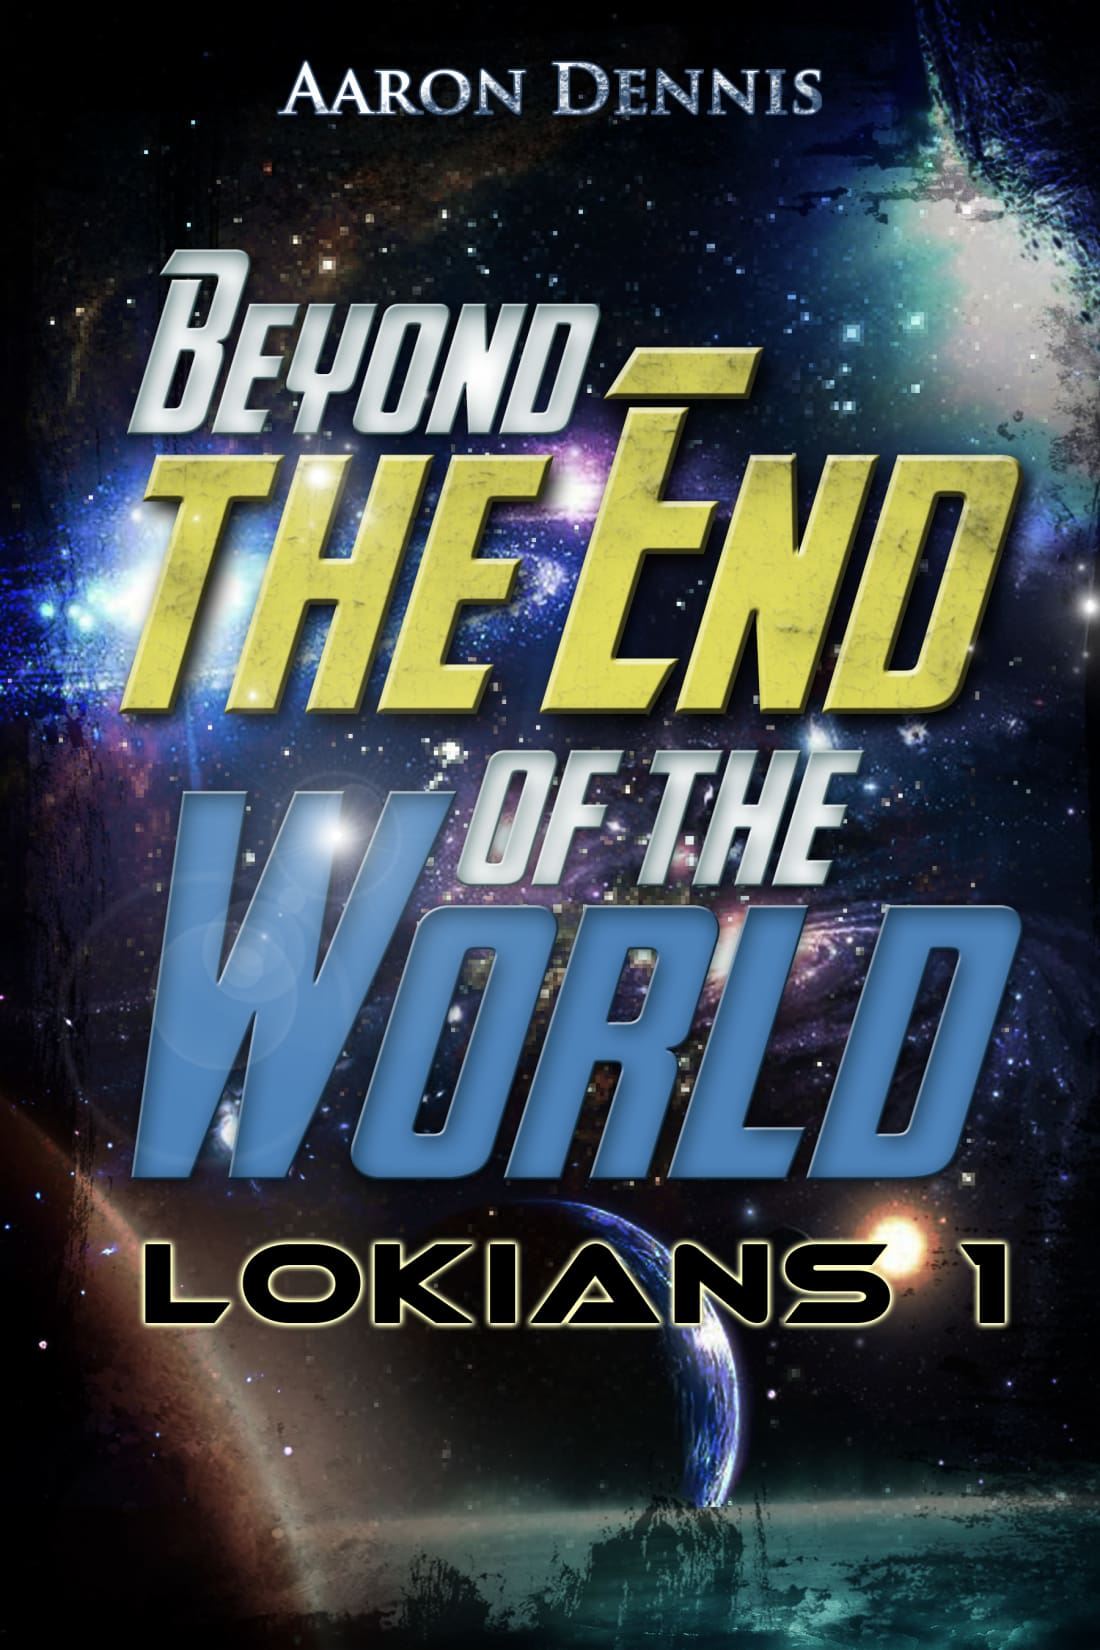 Part 13 of Beyond the End of the World, Lokians 1